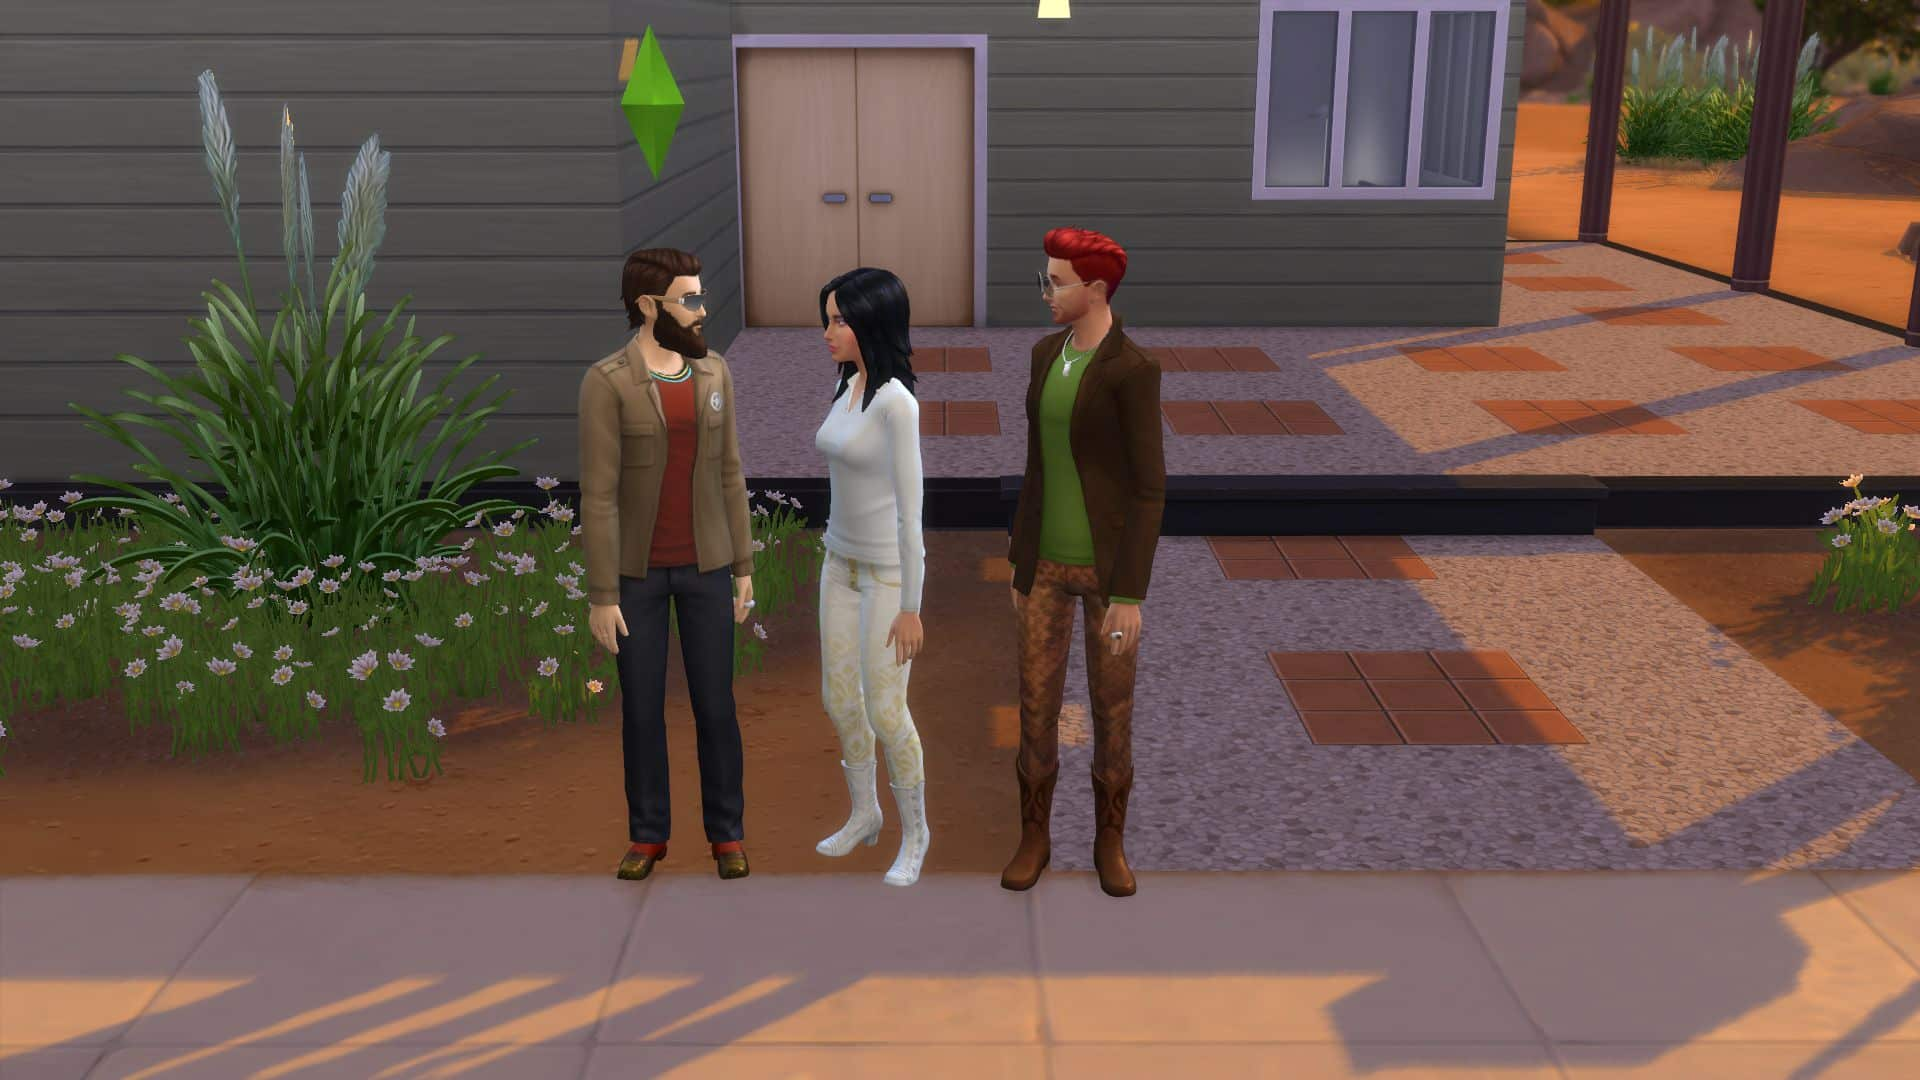 The Sims 4 - The 14 Best Mods for Gameplay, Traits